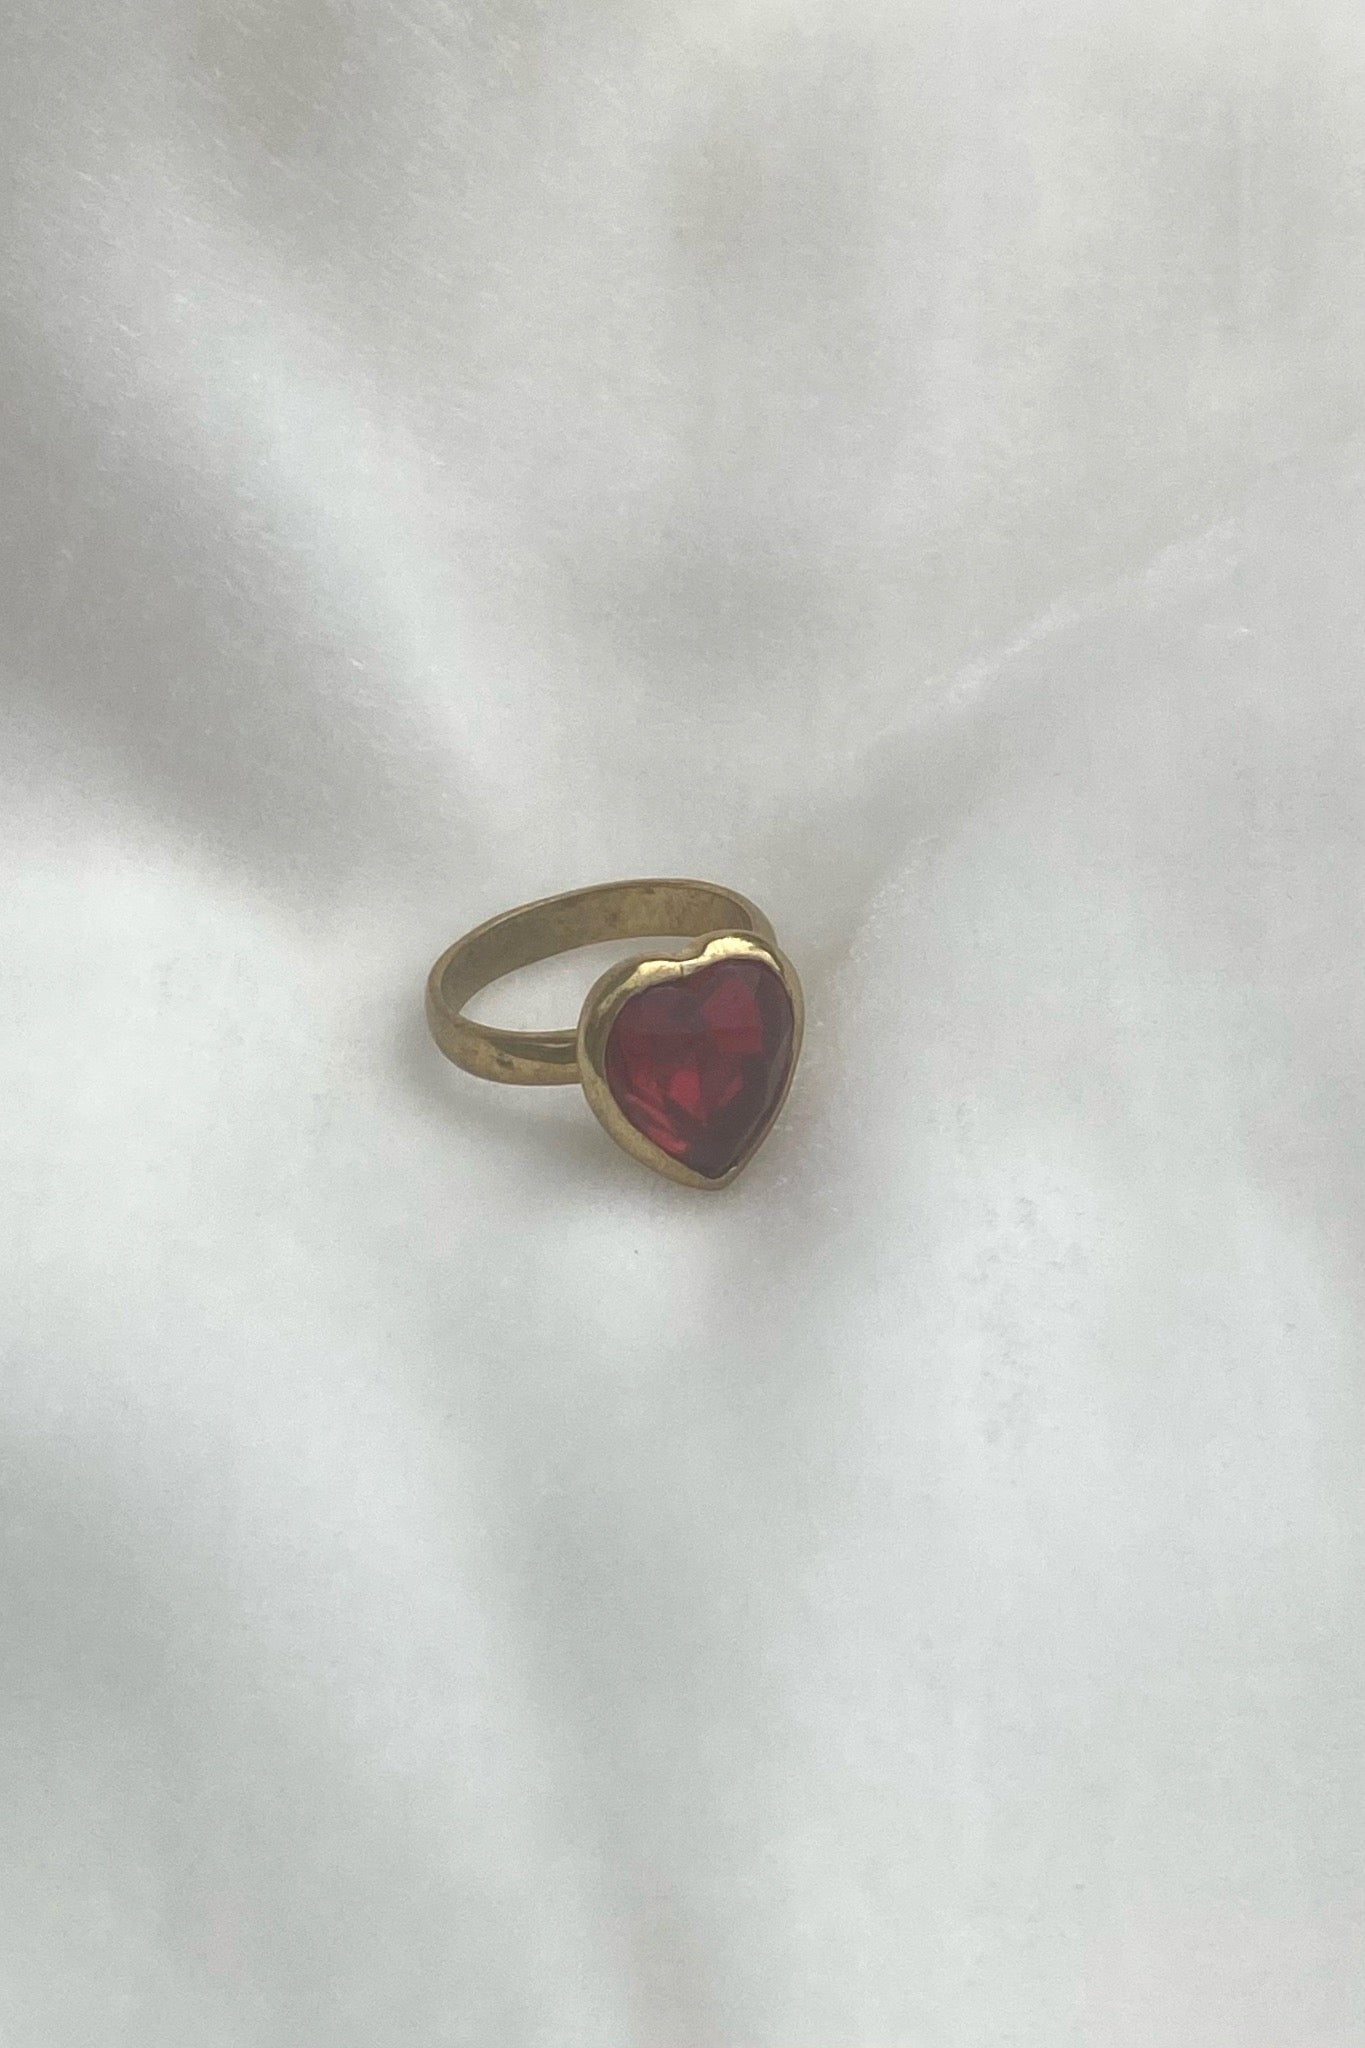 LOVELY RING IN BRASS/RUBY